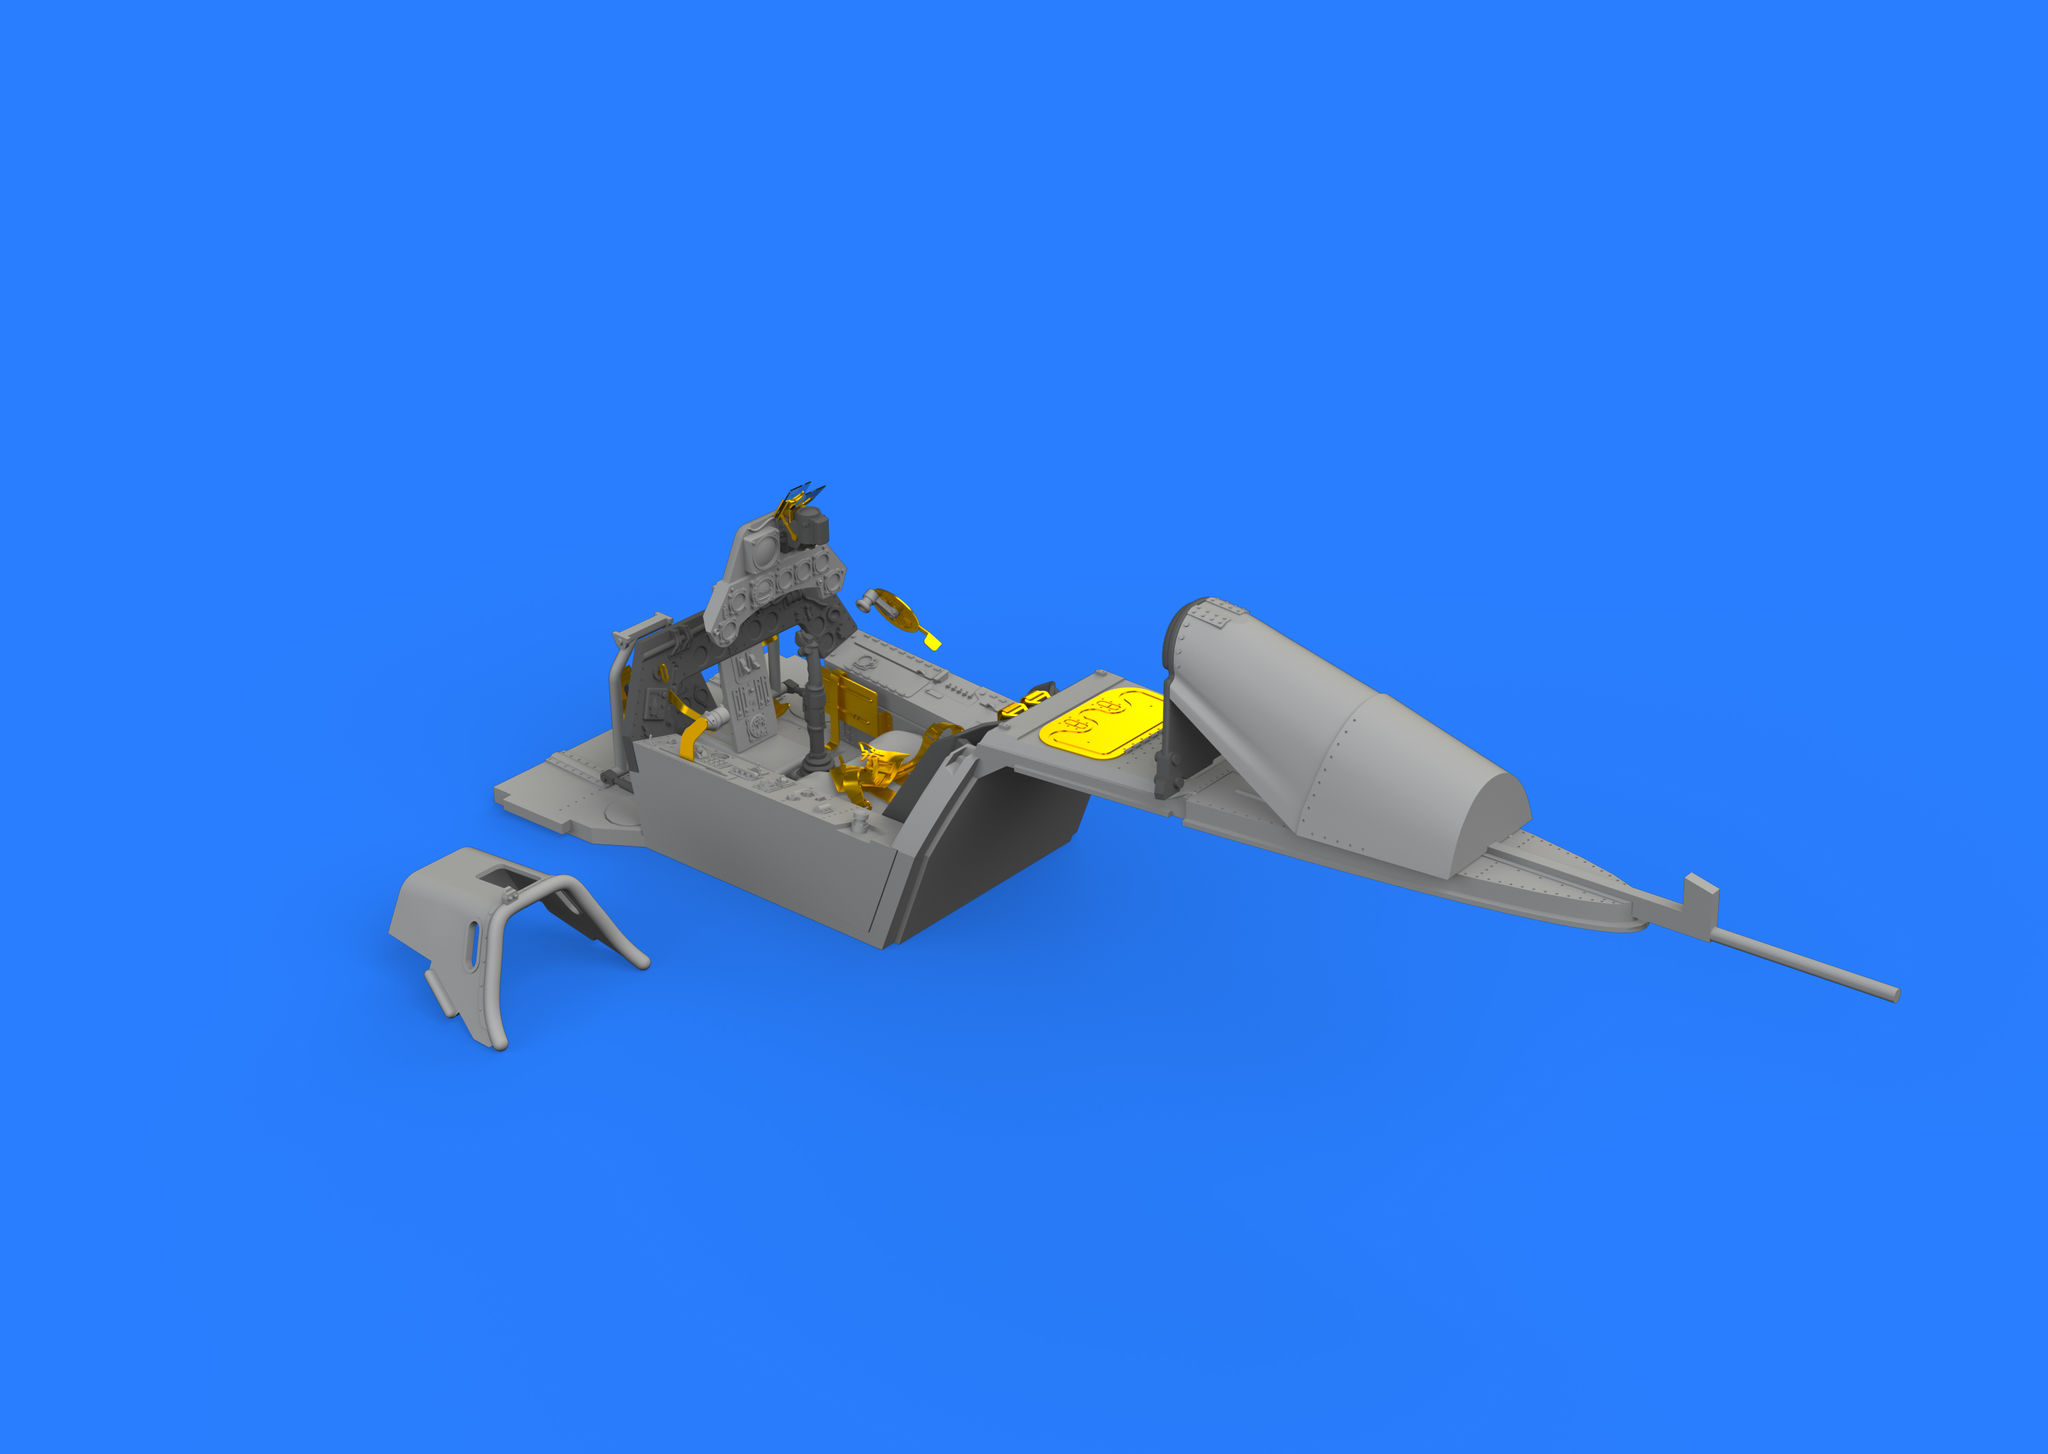 Eduard Accessories 632120 Fw 190A-8//R11 cockpit for Revell in 1:32